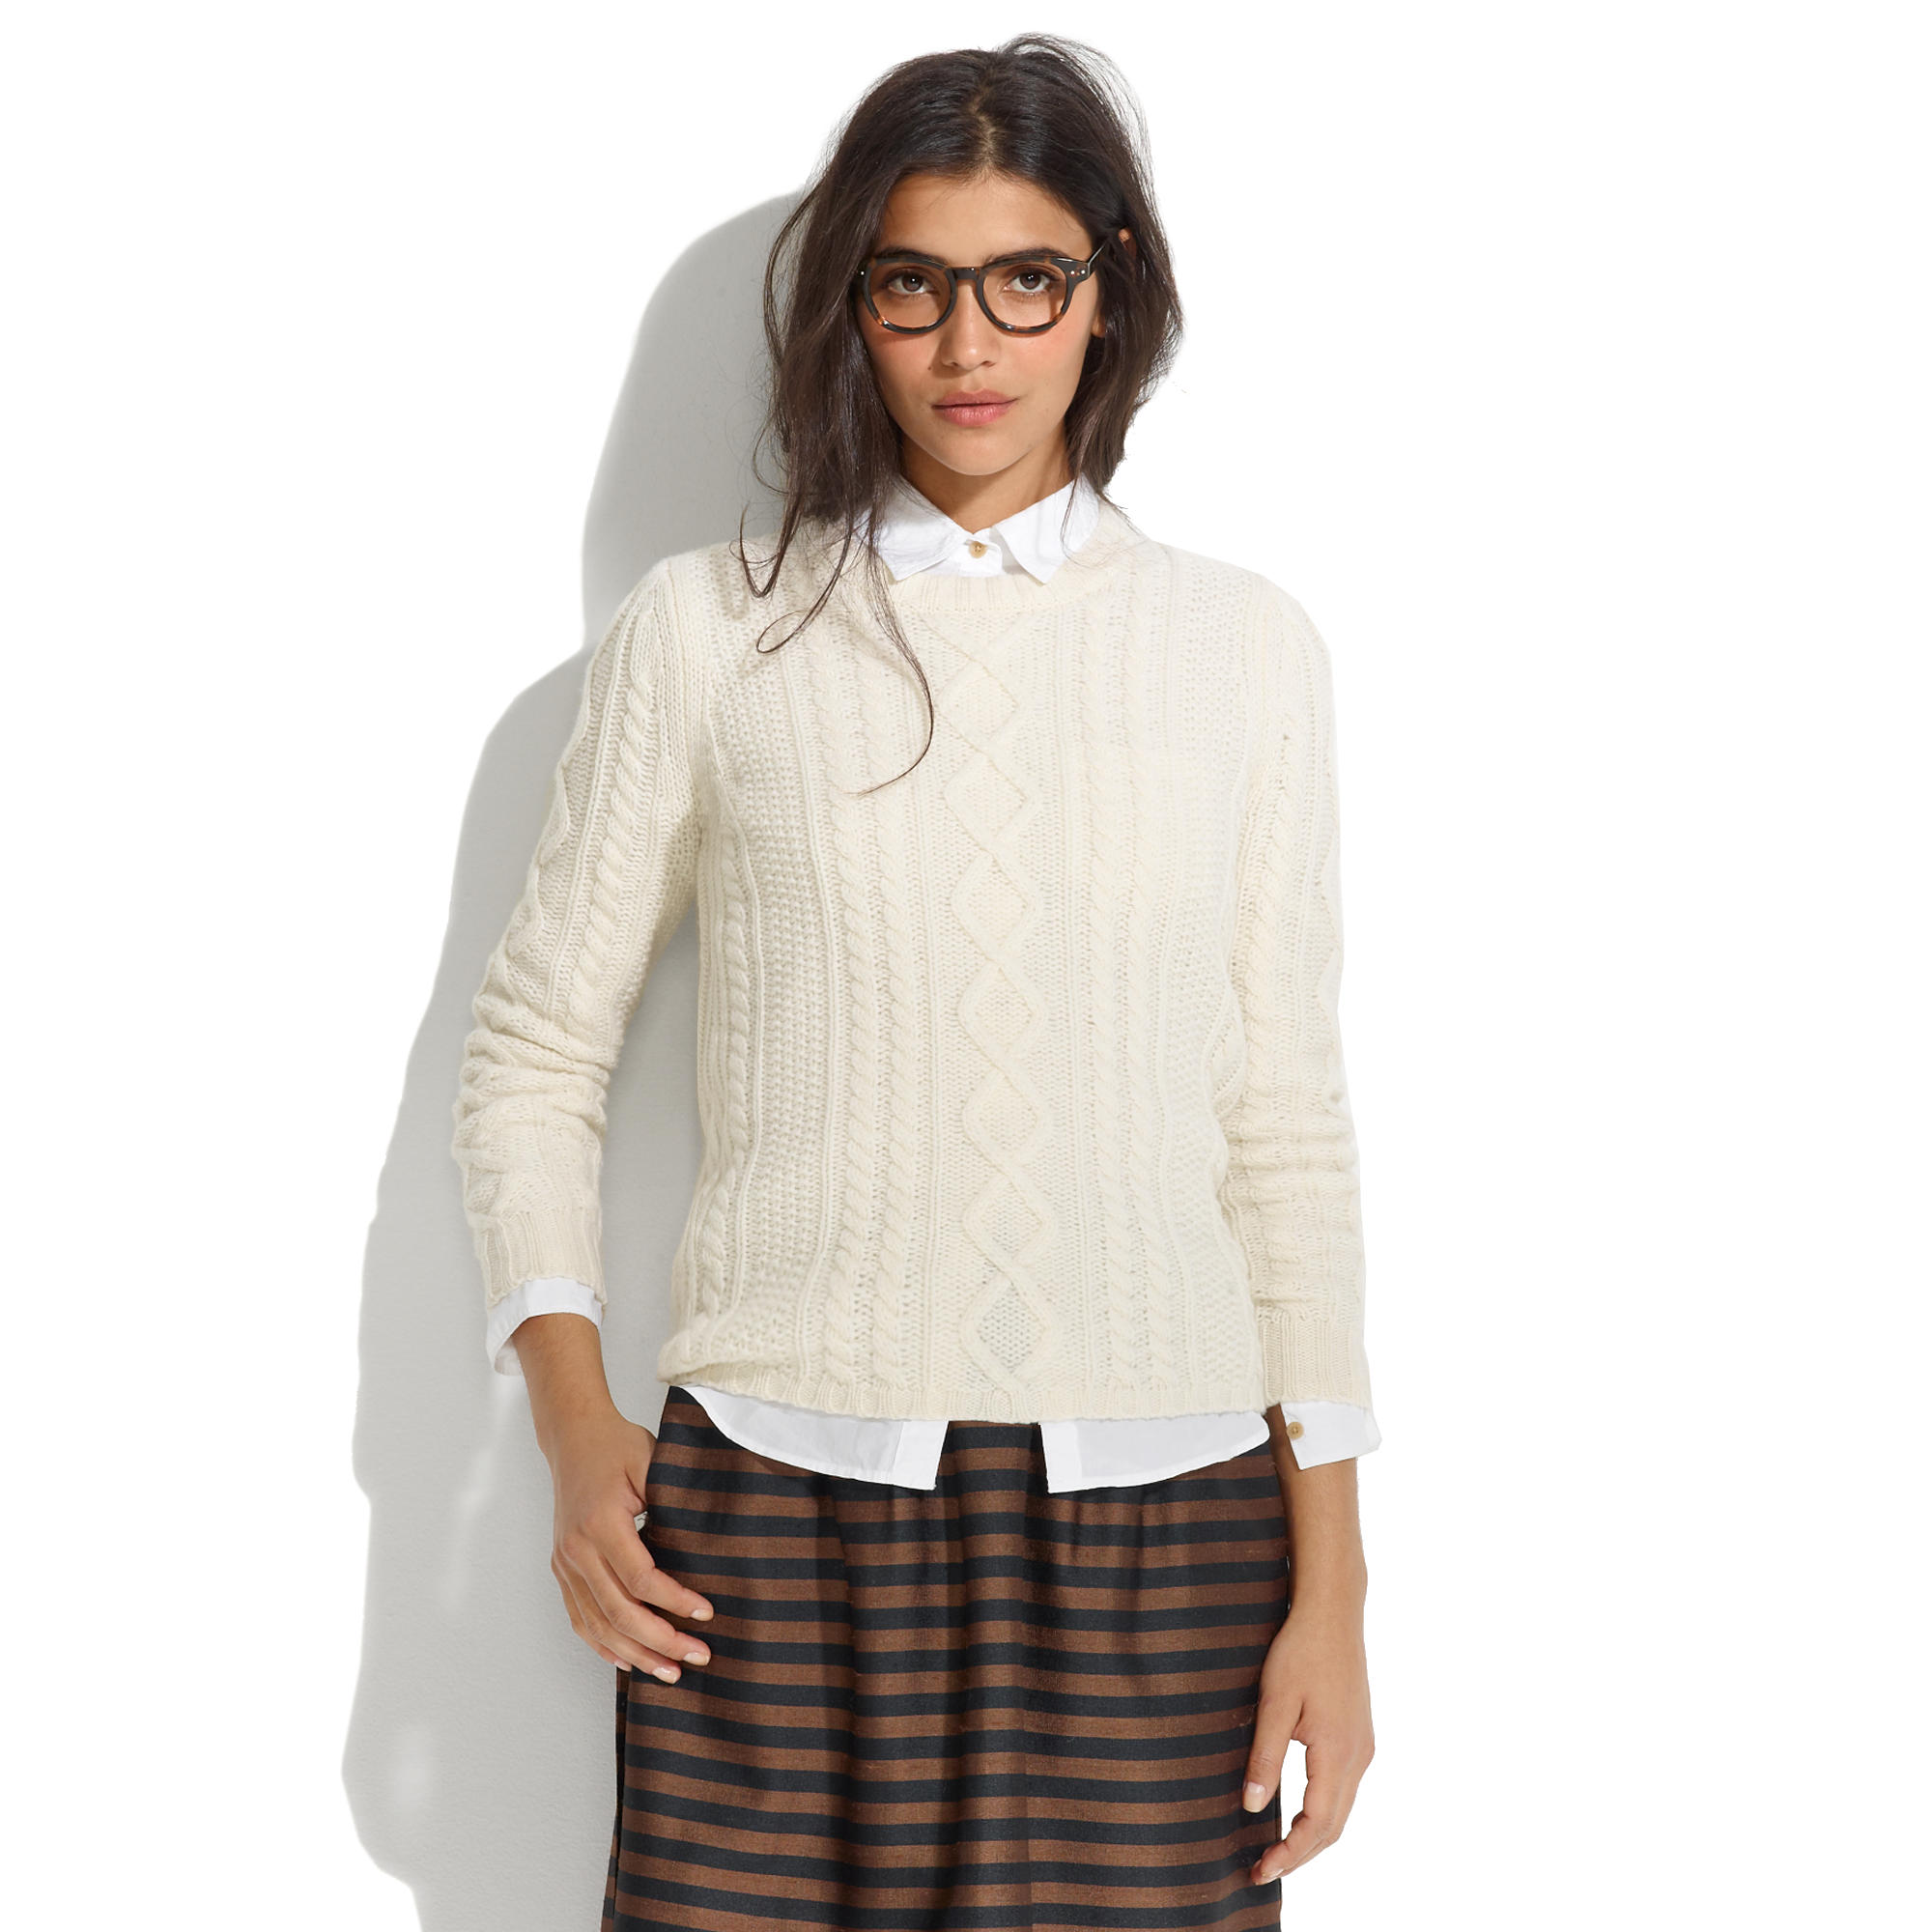 Cableknit Sweater : pullovers | Madewell